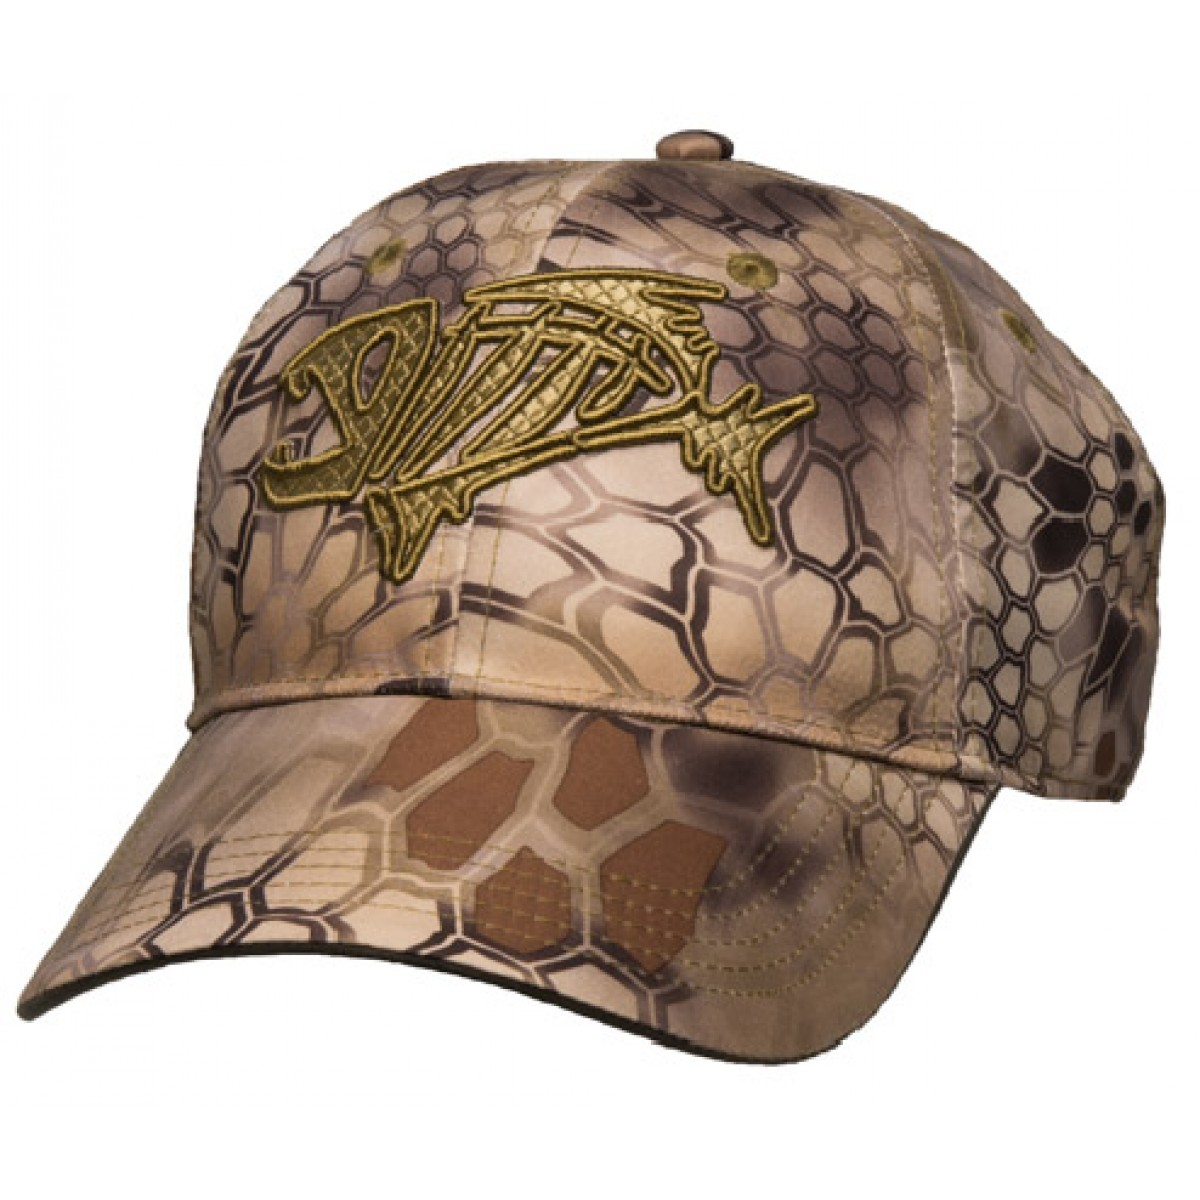 874ab15598fe5 G Loomis Hats and Visors